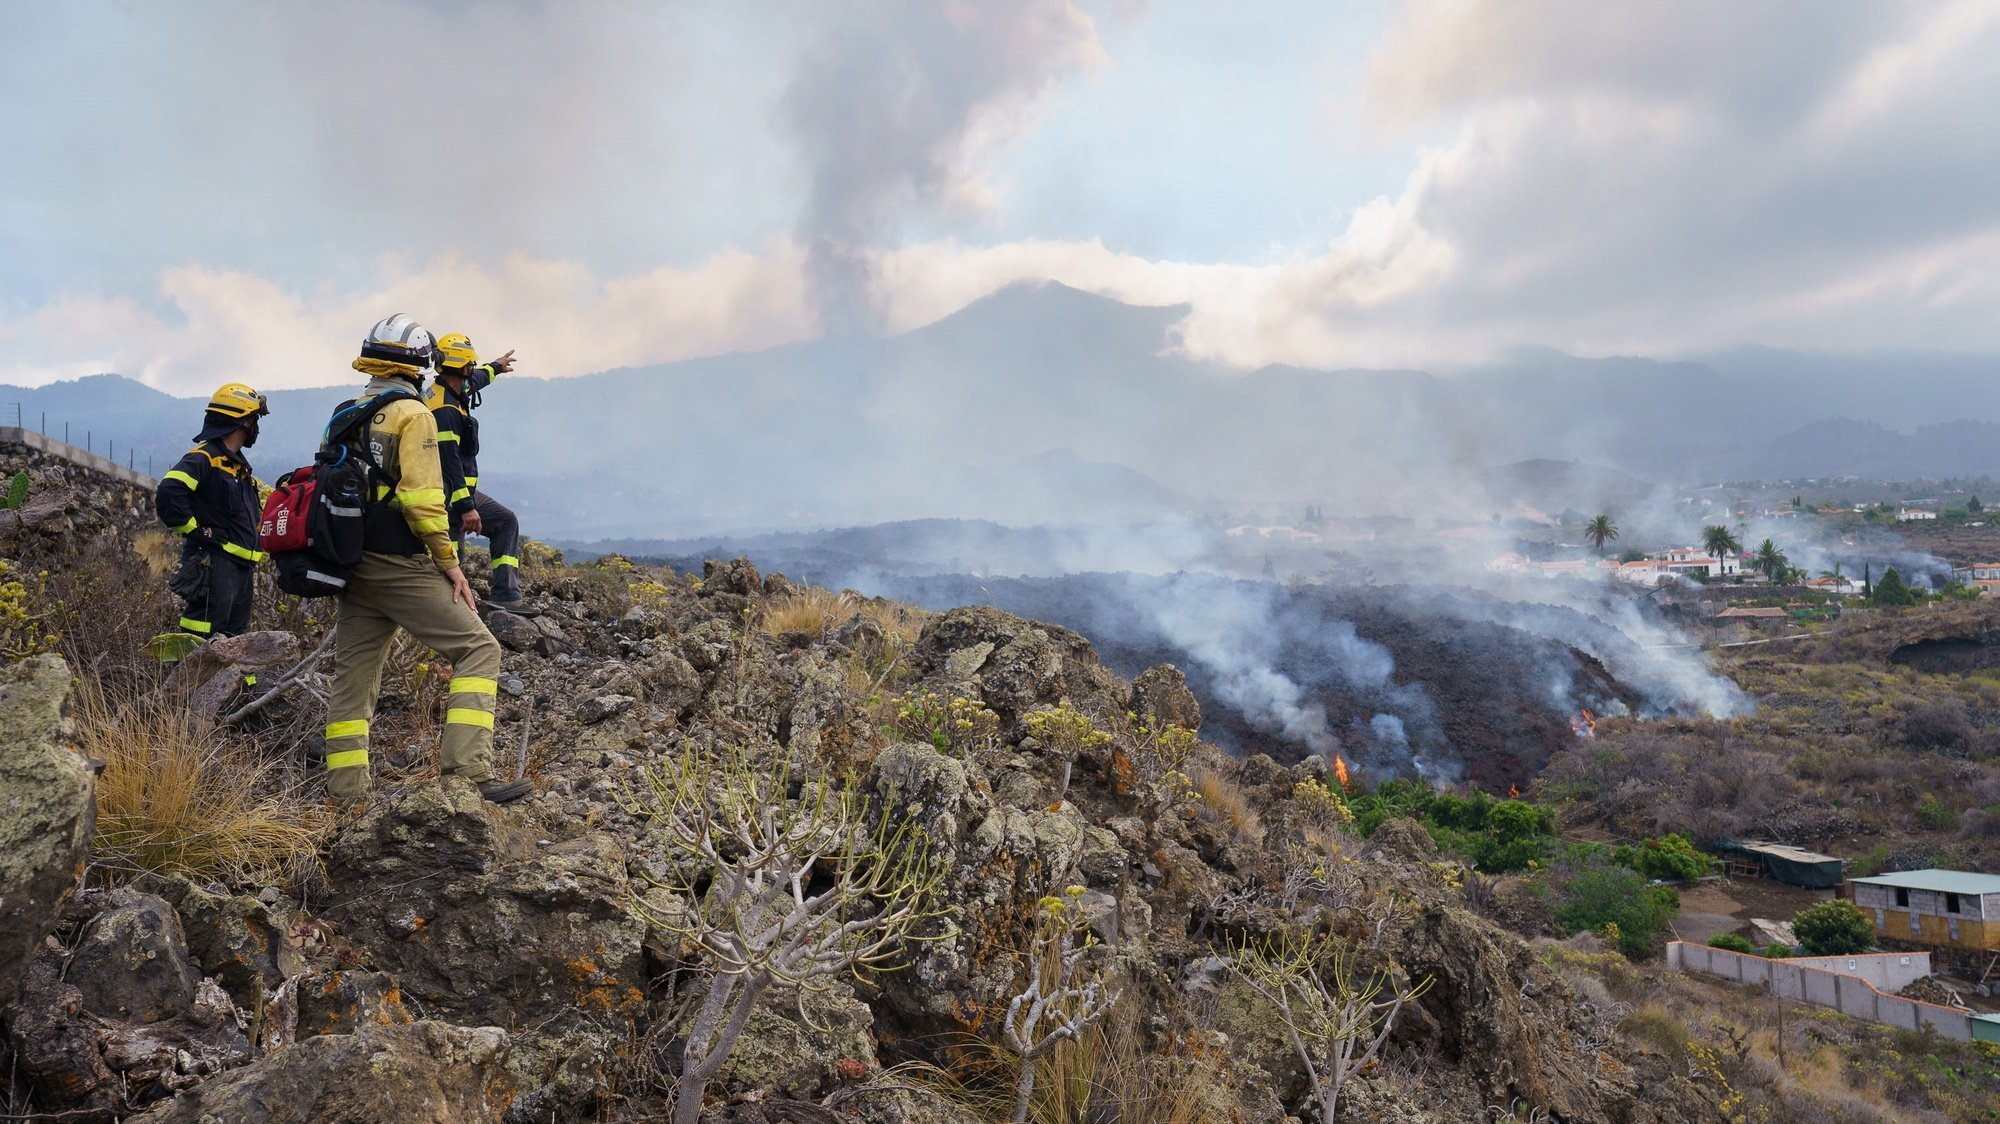 epa09479206 Firemen look at the lava flow from the Cumbre Vieja volcano as it moves towards the neighborhood of Todoque, in the municipality of Los Llanos de Aridane, after all locals were evacuated, in La Palma, Canary Islands, Spain, 21 September 2021.The Cumbre Vieja volcano began to erupt in Montana Rajada in the municipality of El Paso on 19 September.  EPA/Ramon de la Rocha